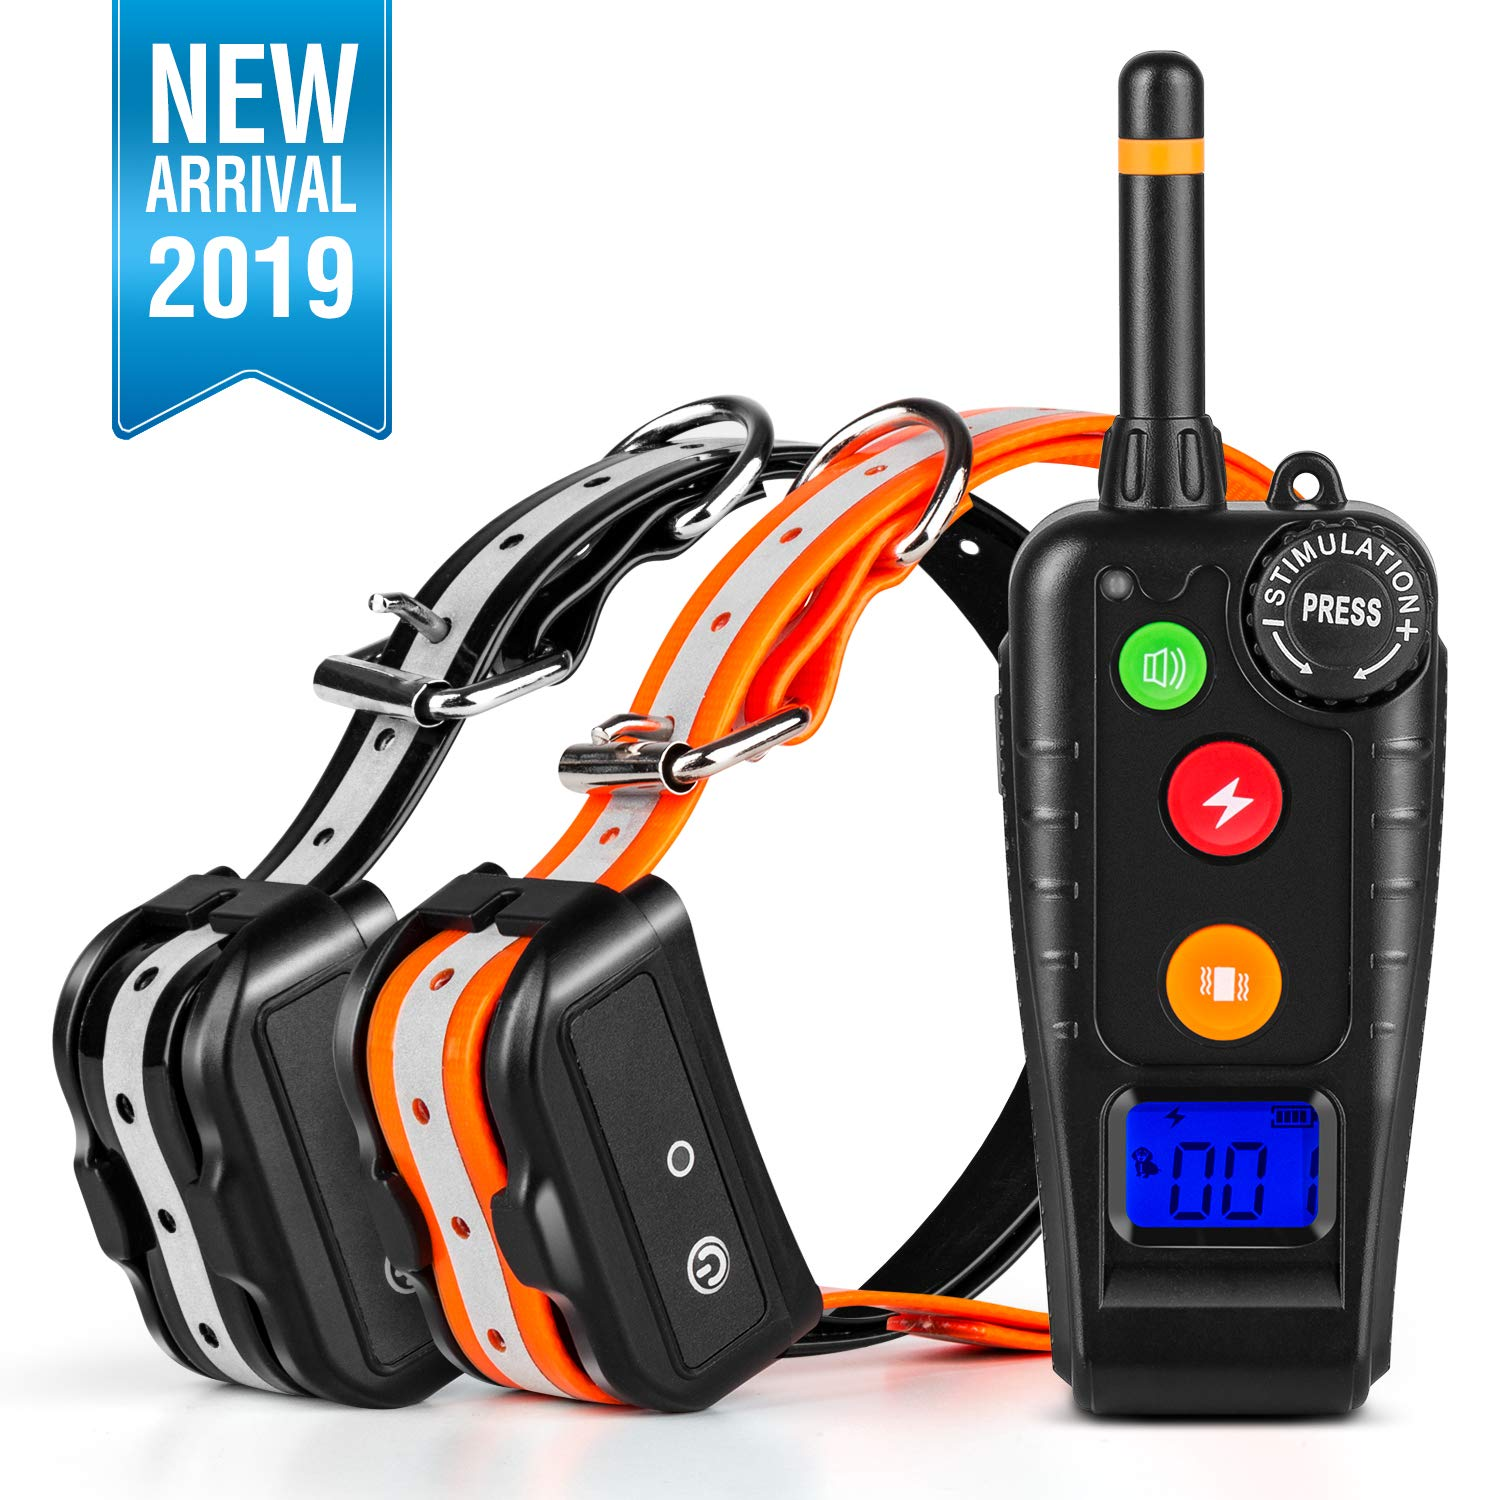 PetYeah Dog Training Collar for 2 Dogs,1000FT Remote Shock Collar for Dogs,Waterproof and Rechargeable,Beep/Vibration/Shock w/3 Training Modes for Small Medium Large Dogs